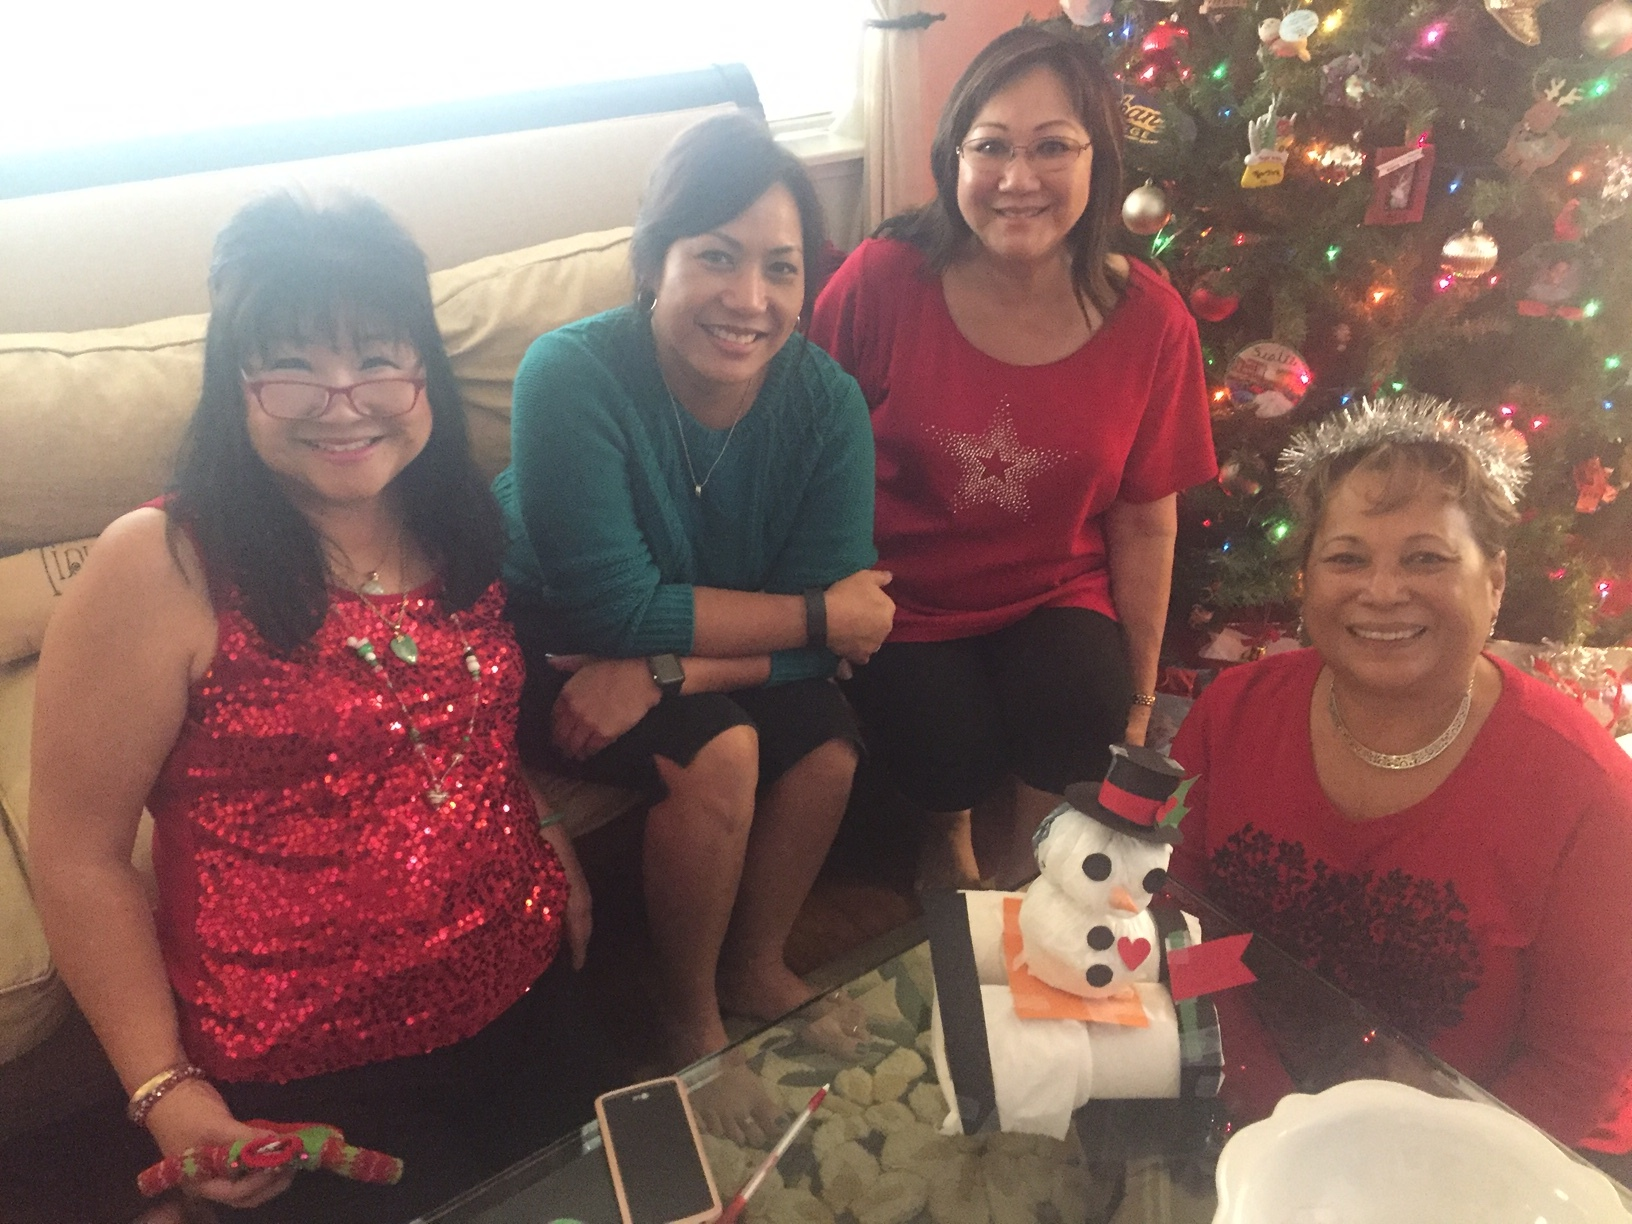 Roxanne's group and their snowman on a roll - www.stampedwithaloha.com